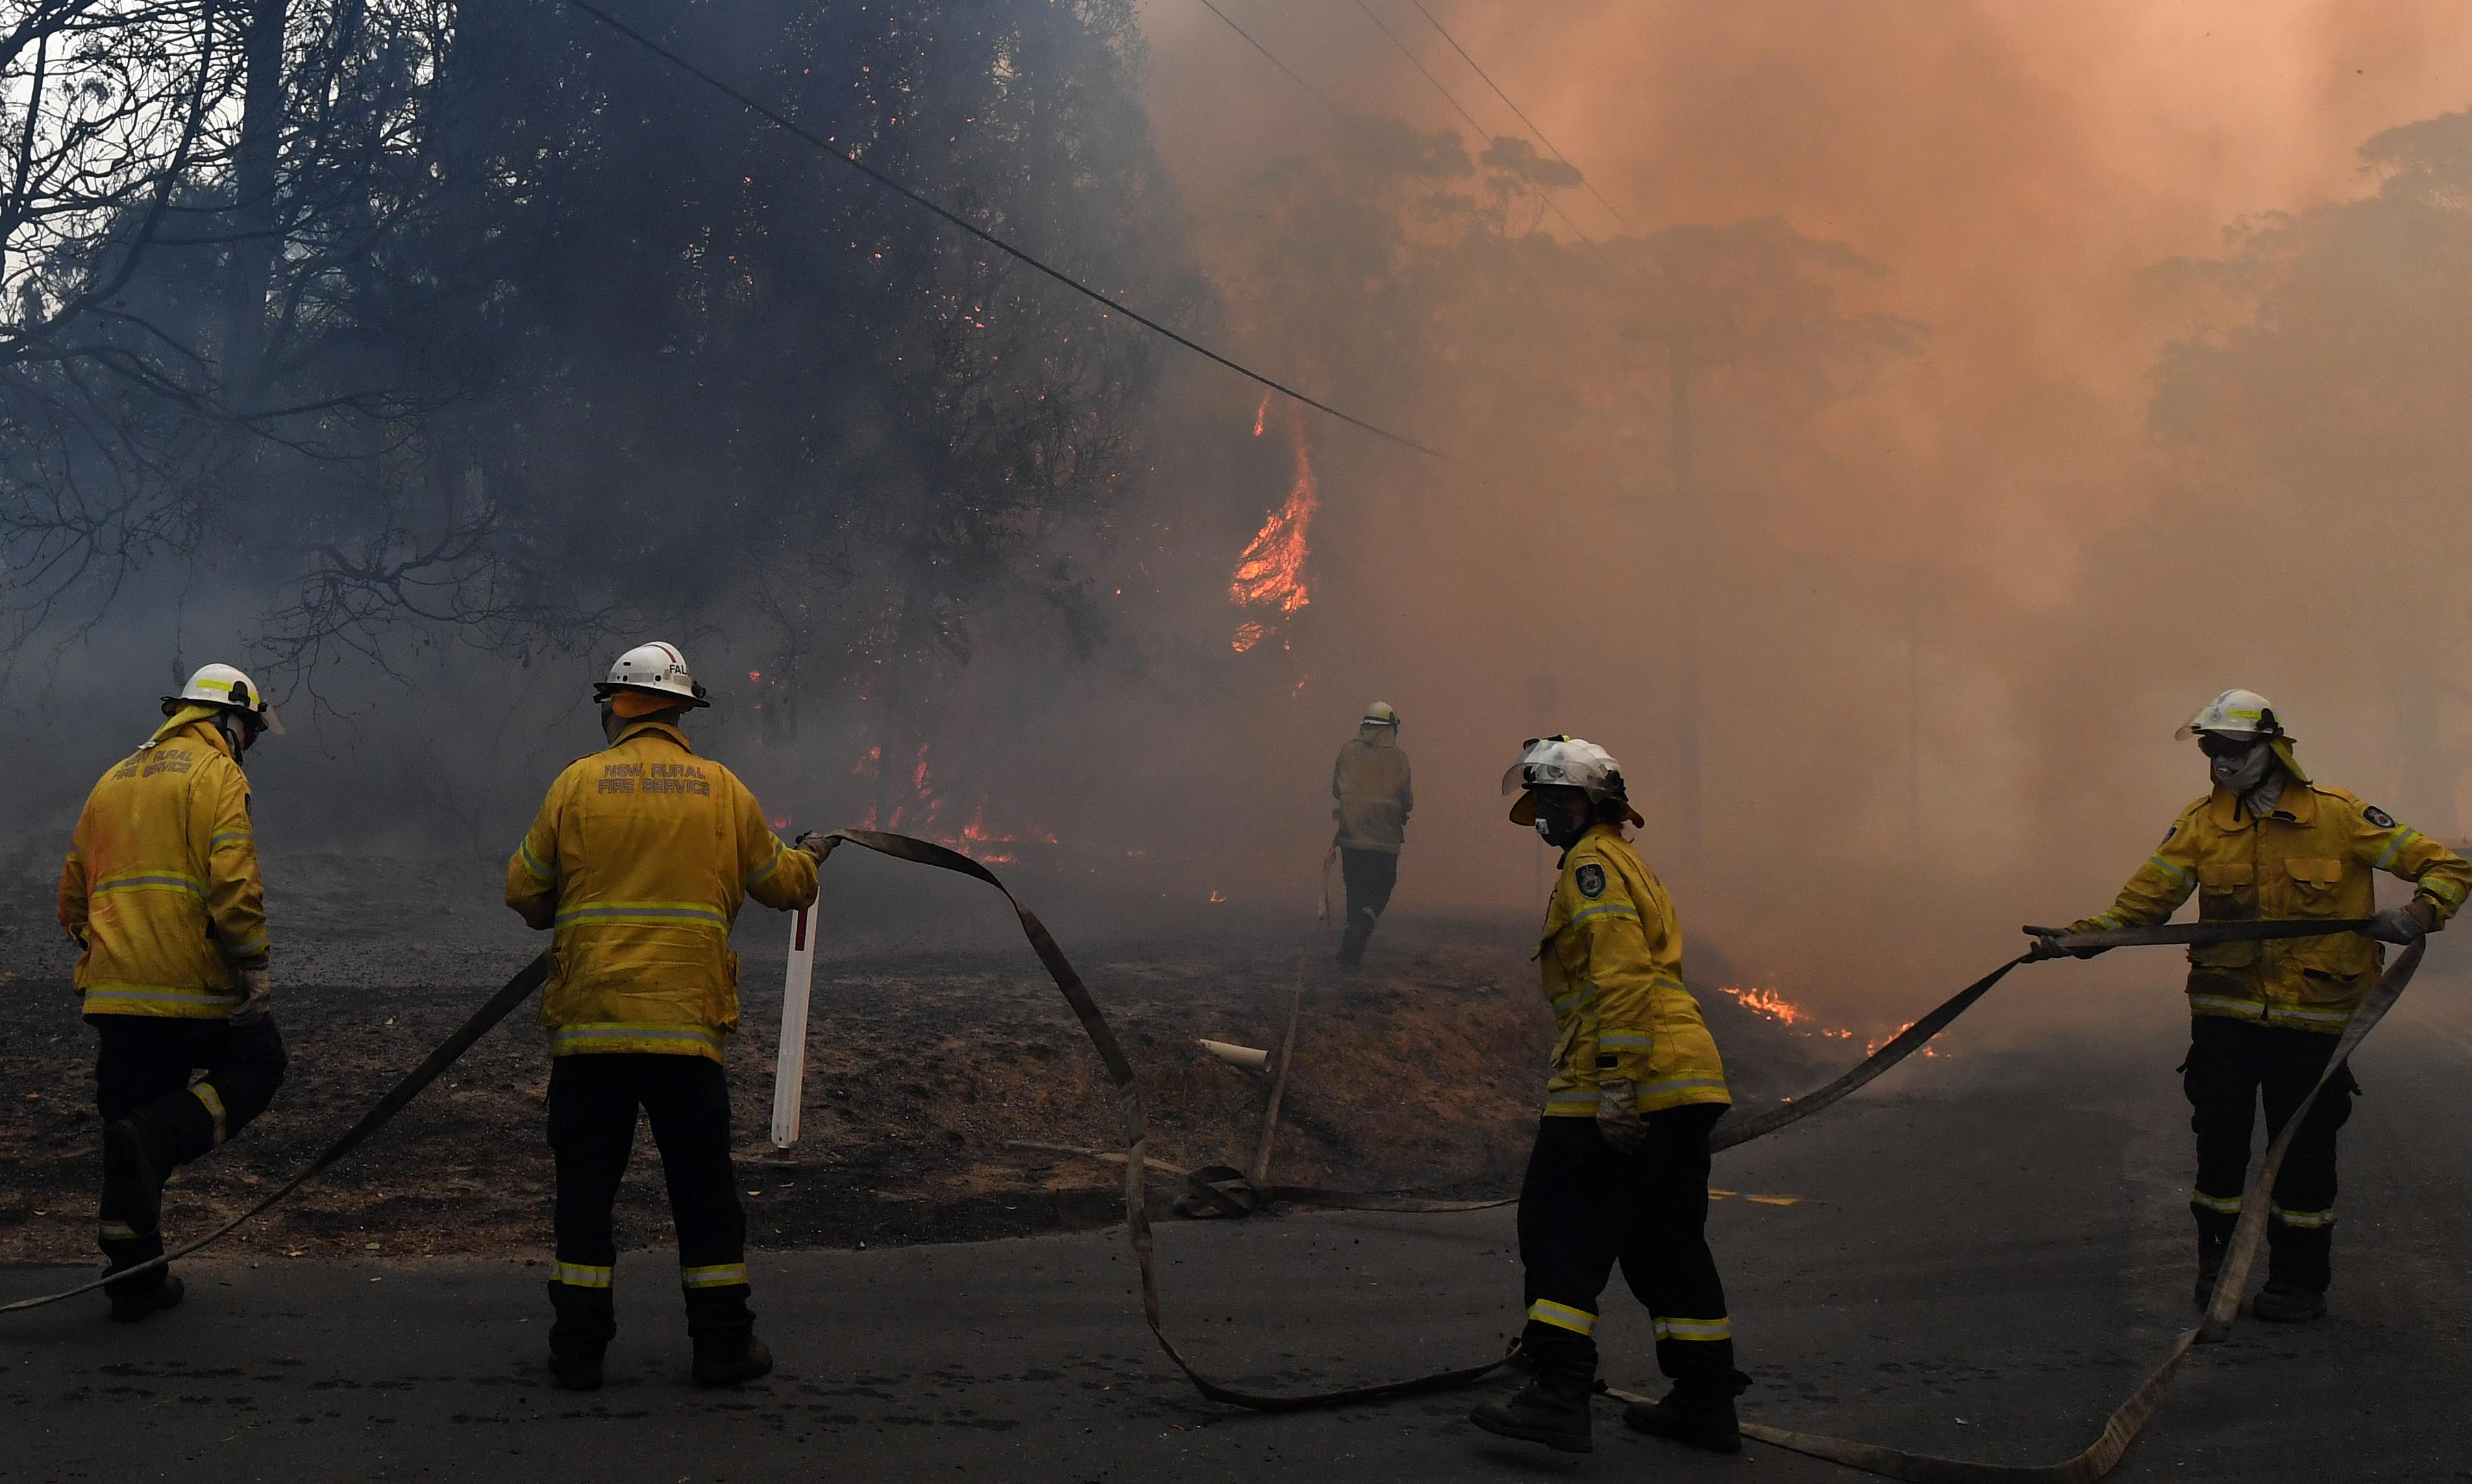 When the fires stop, let's extend our sense of national unity beyond the immediate crisis